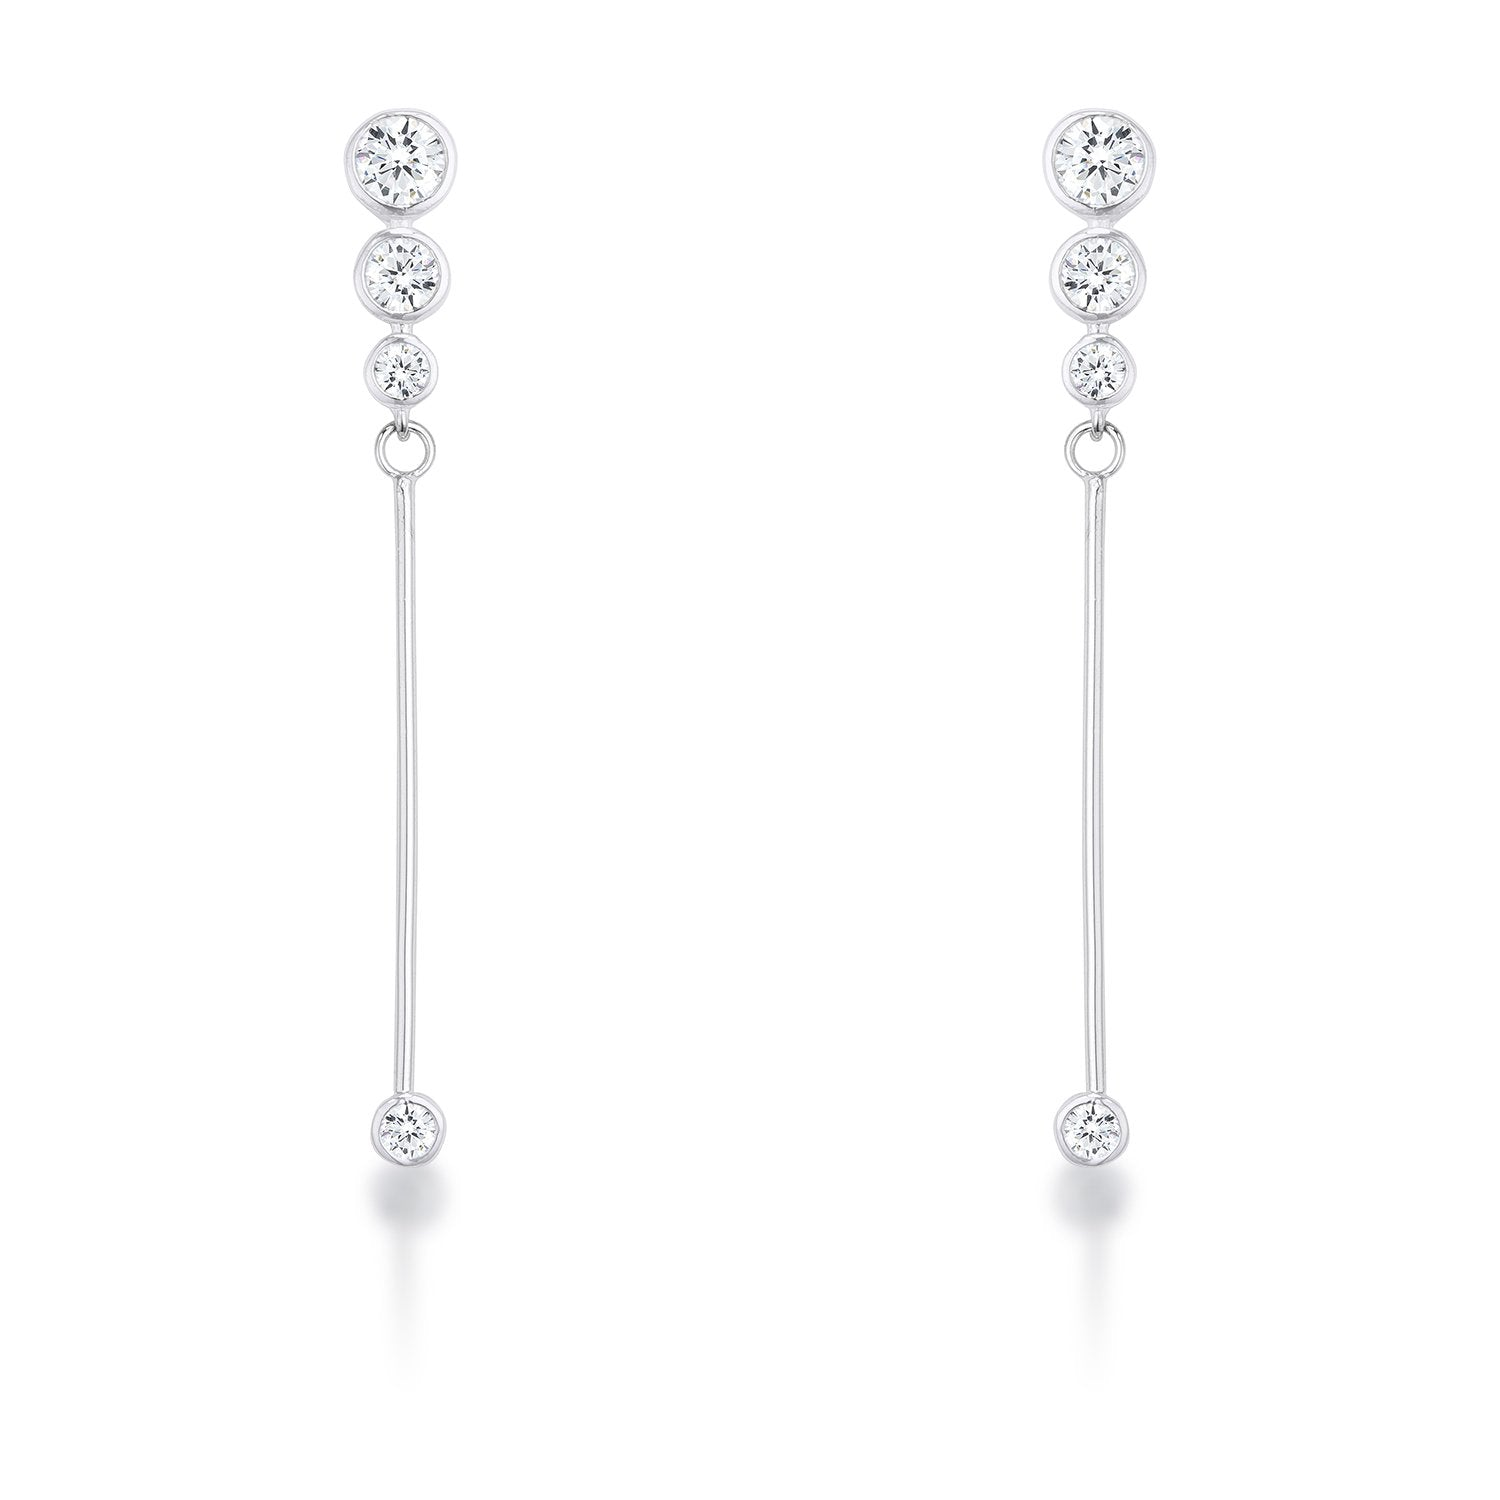 1.2Ct Graduated Rhodium Plated Drop Cubic Zirconia Earrings.